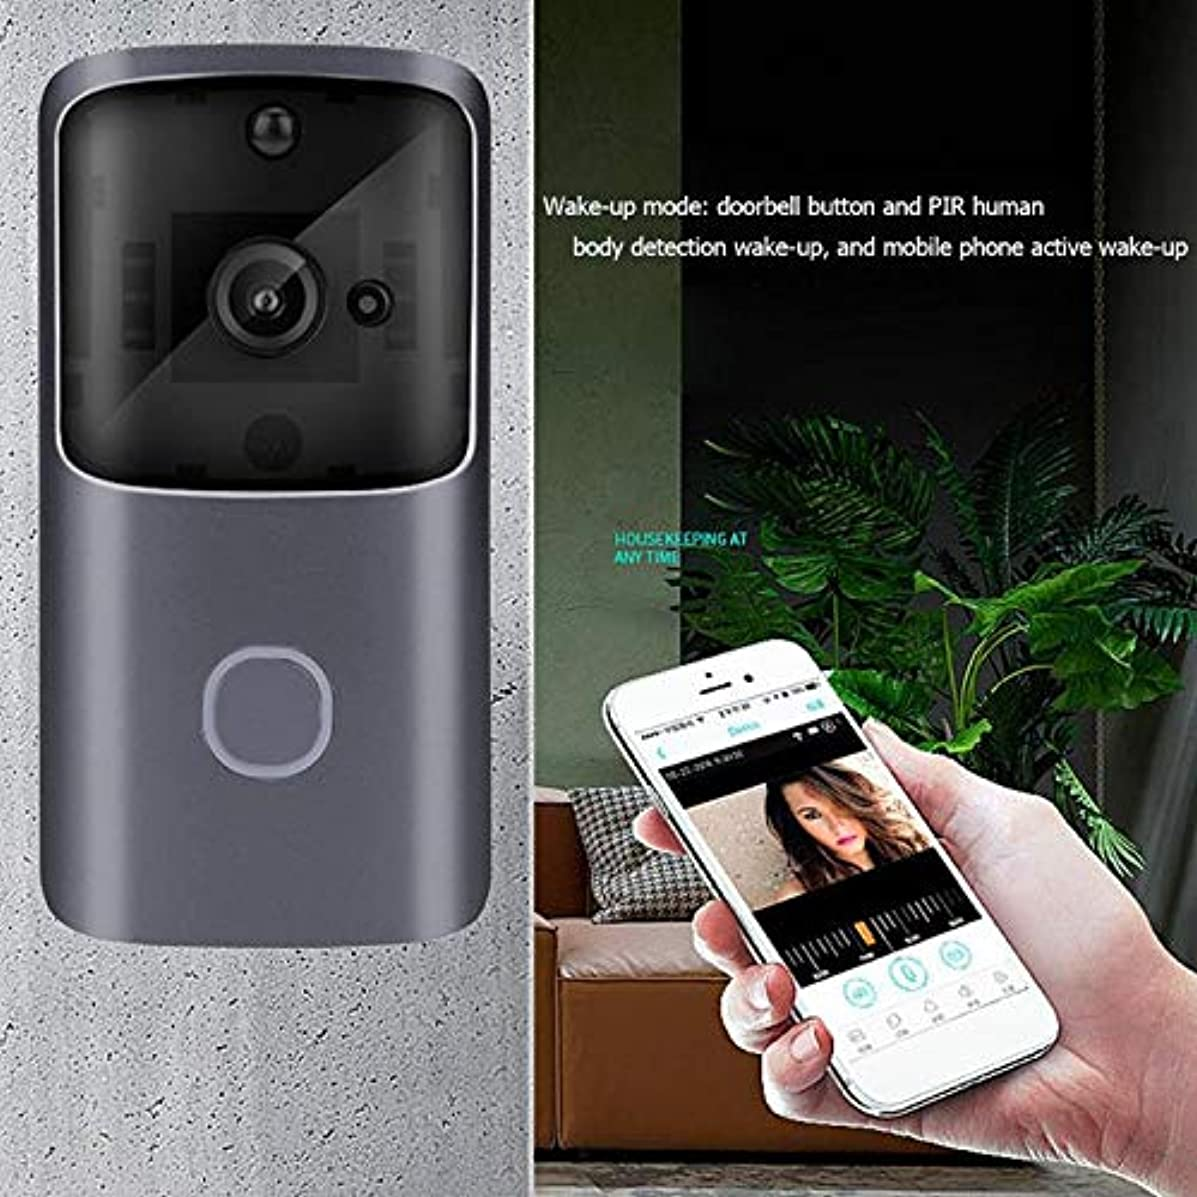 Blue-Ocean-11-720p WiFi Smart Video Doorbell Camera APP Control Remote Monitoring Video Intercom Home Safety System Doorbell